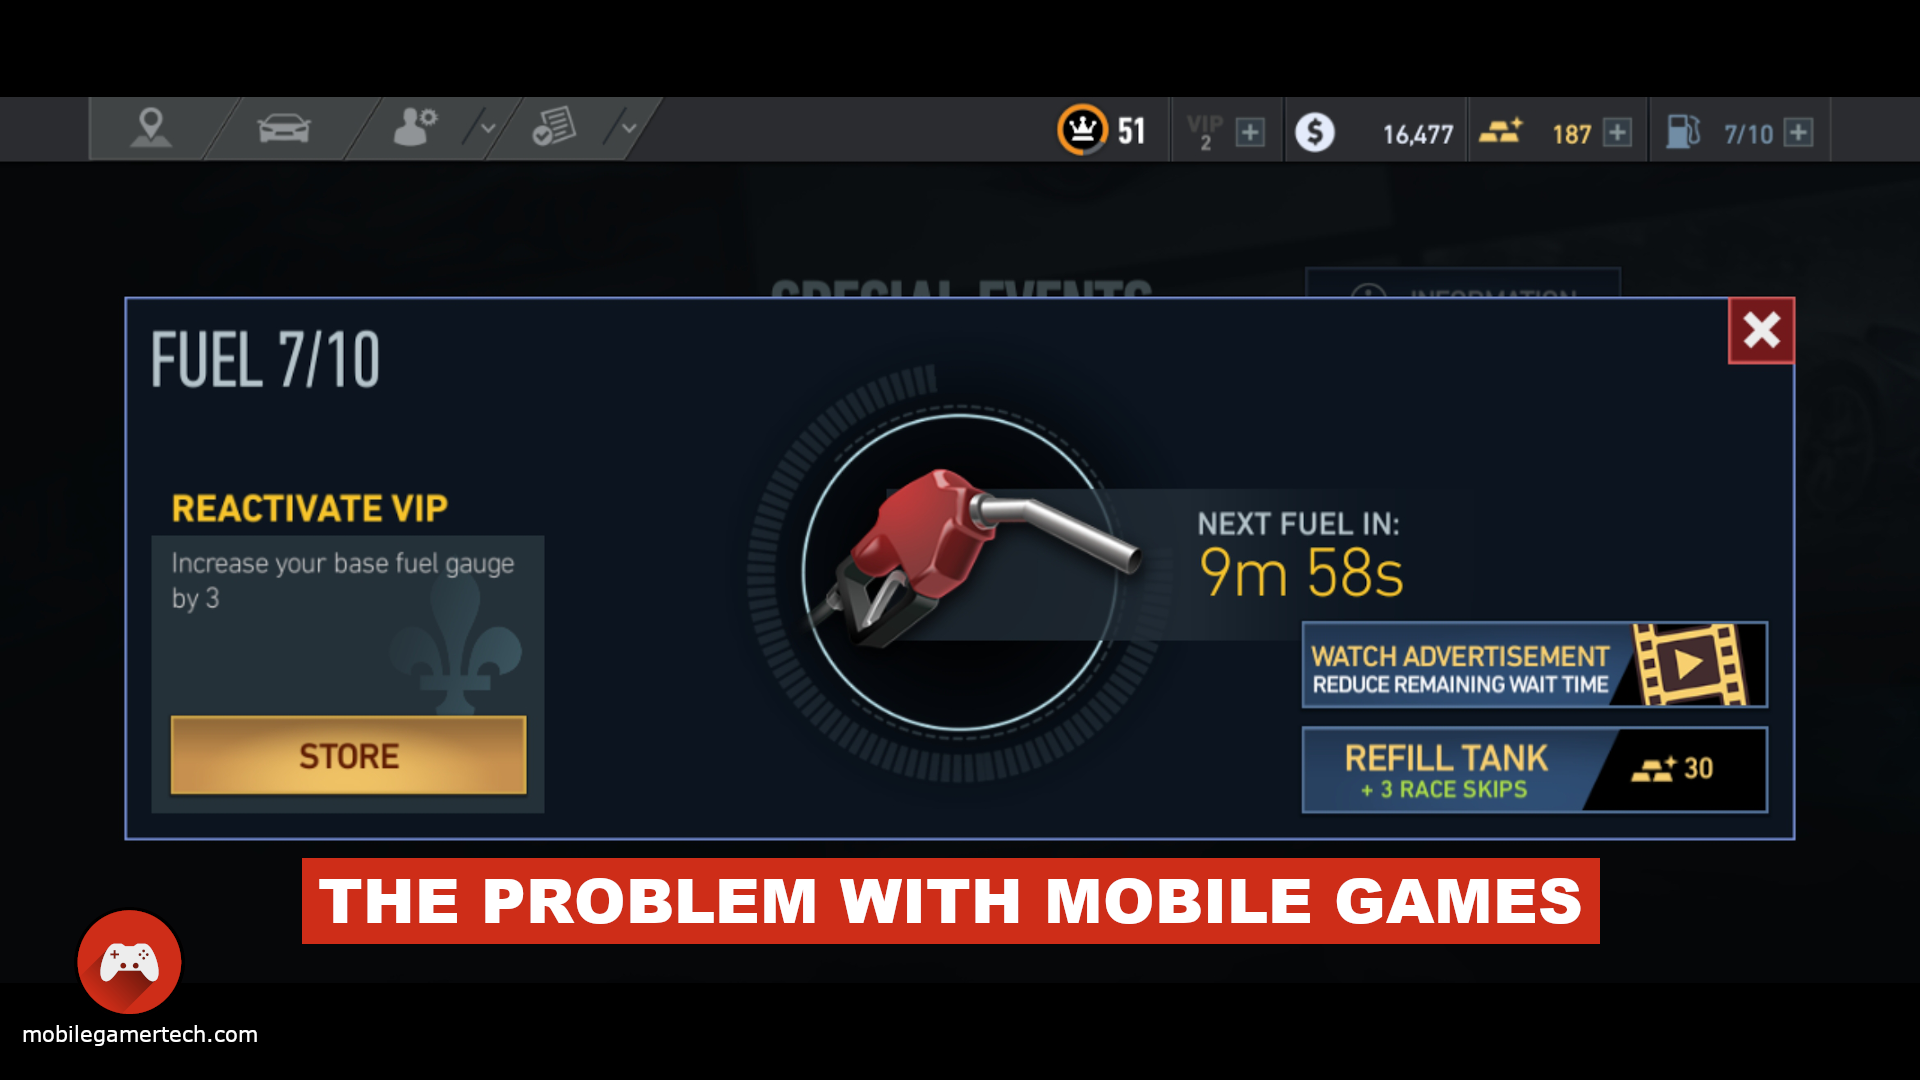 The Problem With Mobile Games